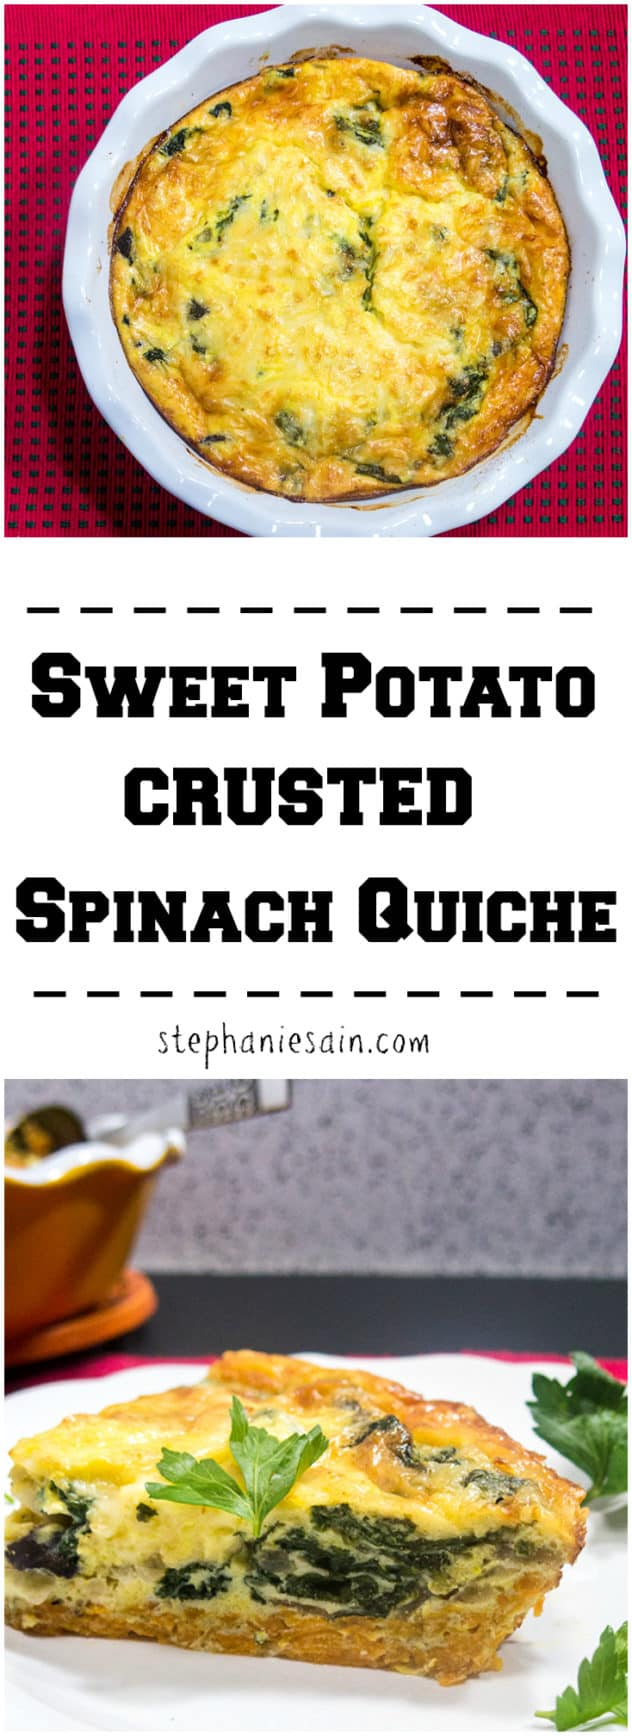 Sweet Potato Crusted Spinach Quiche is a tasty, healthy quiche prepared with a shredded sweet potato crust. Perfect for brunch or dinner. Vegetarian and Gluten Free.